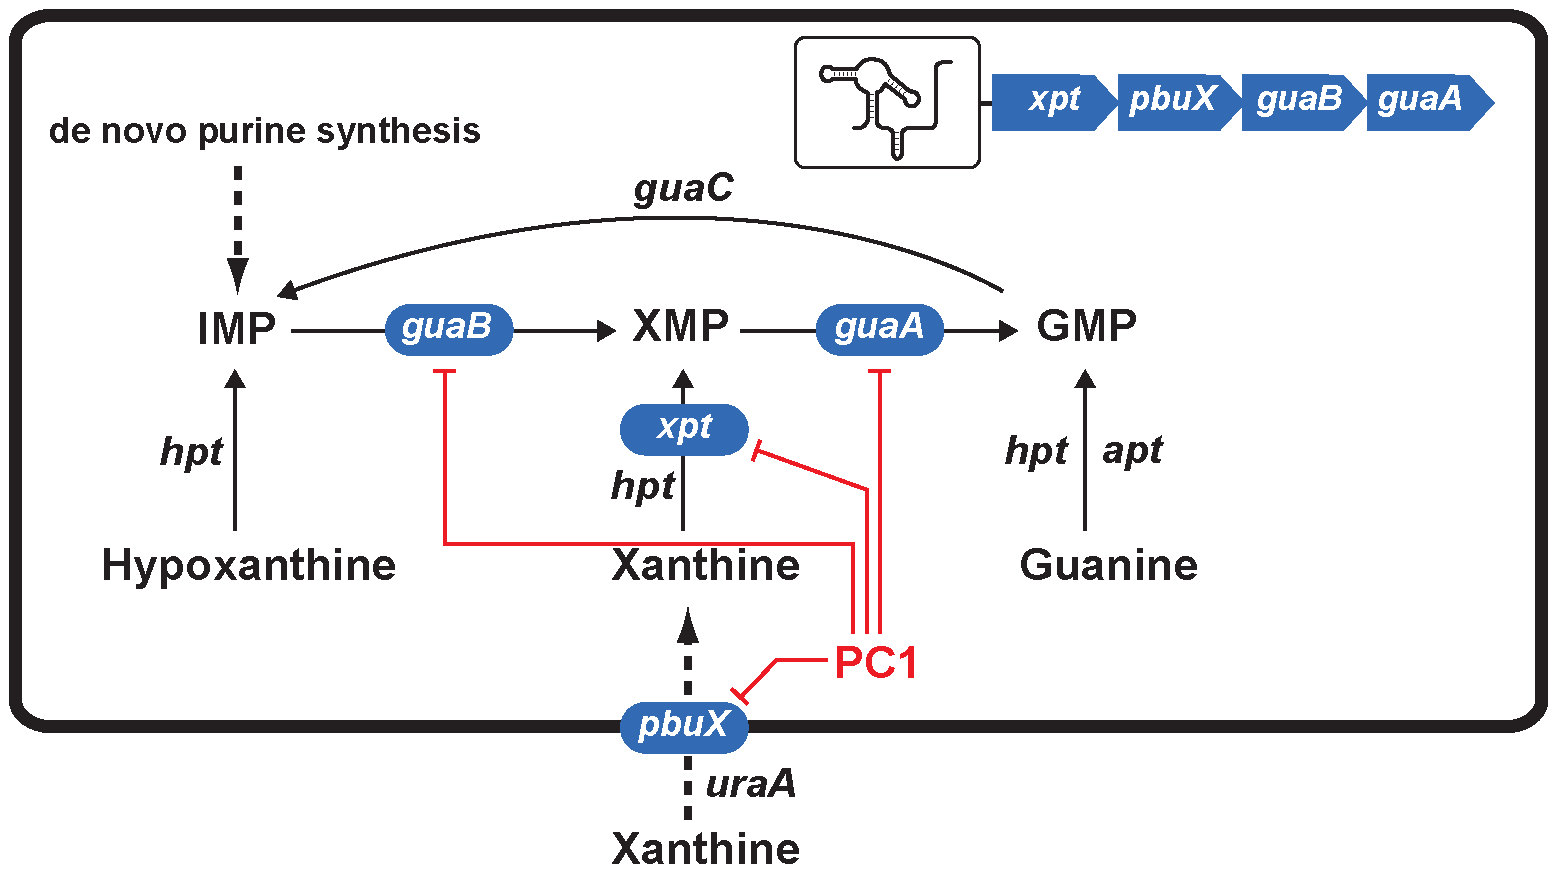 Scheme representing the action mechanism of PC1 on <i>S. aureus</i> guanine pathway.